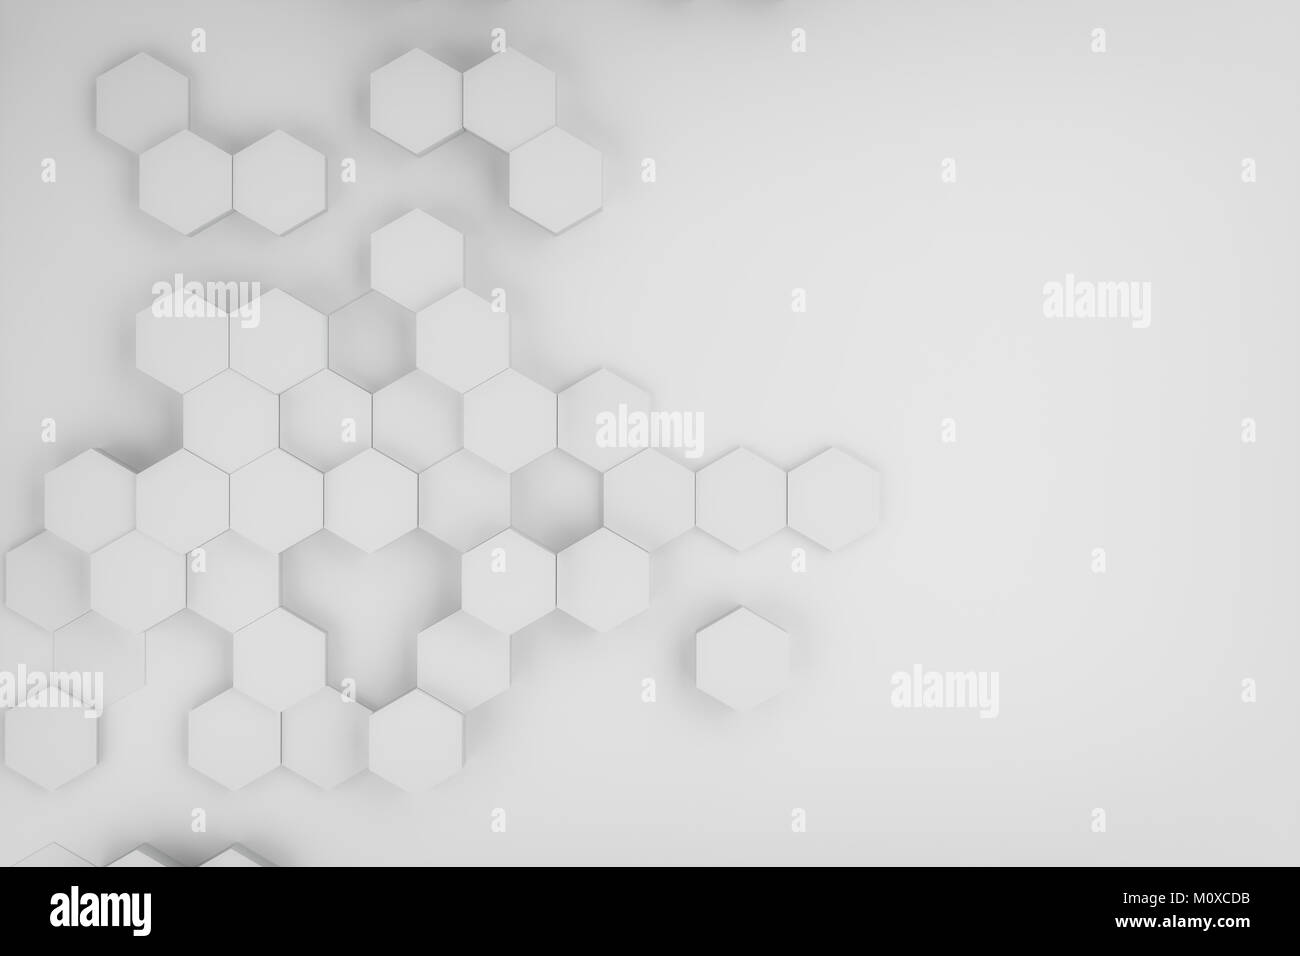 3d rendering of abstract hexagon background - Stock Image